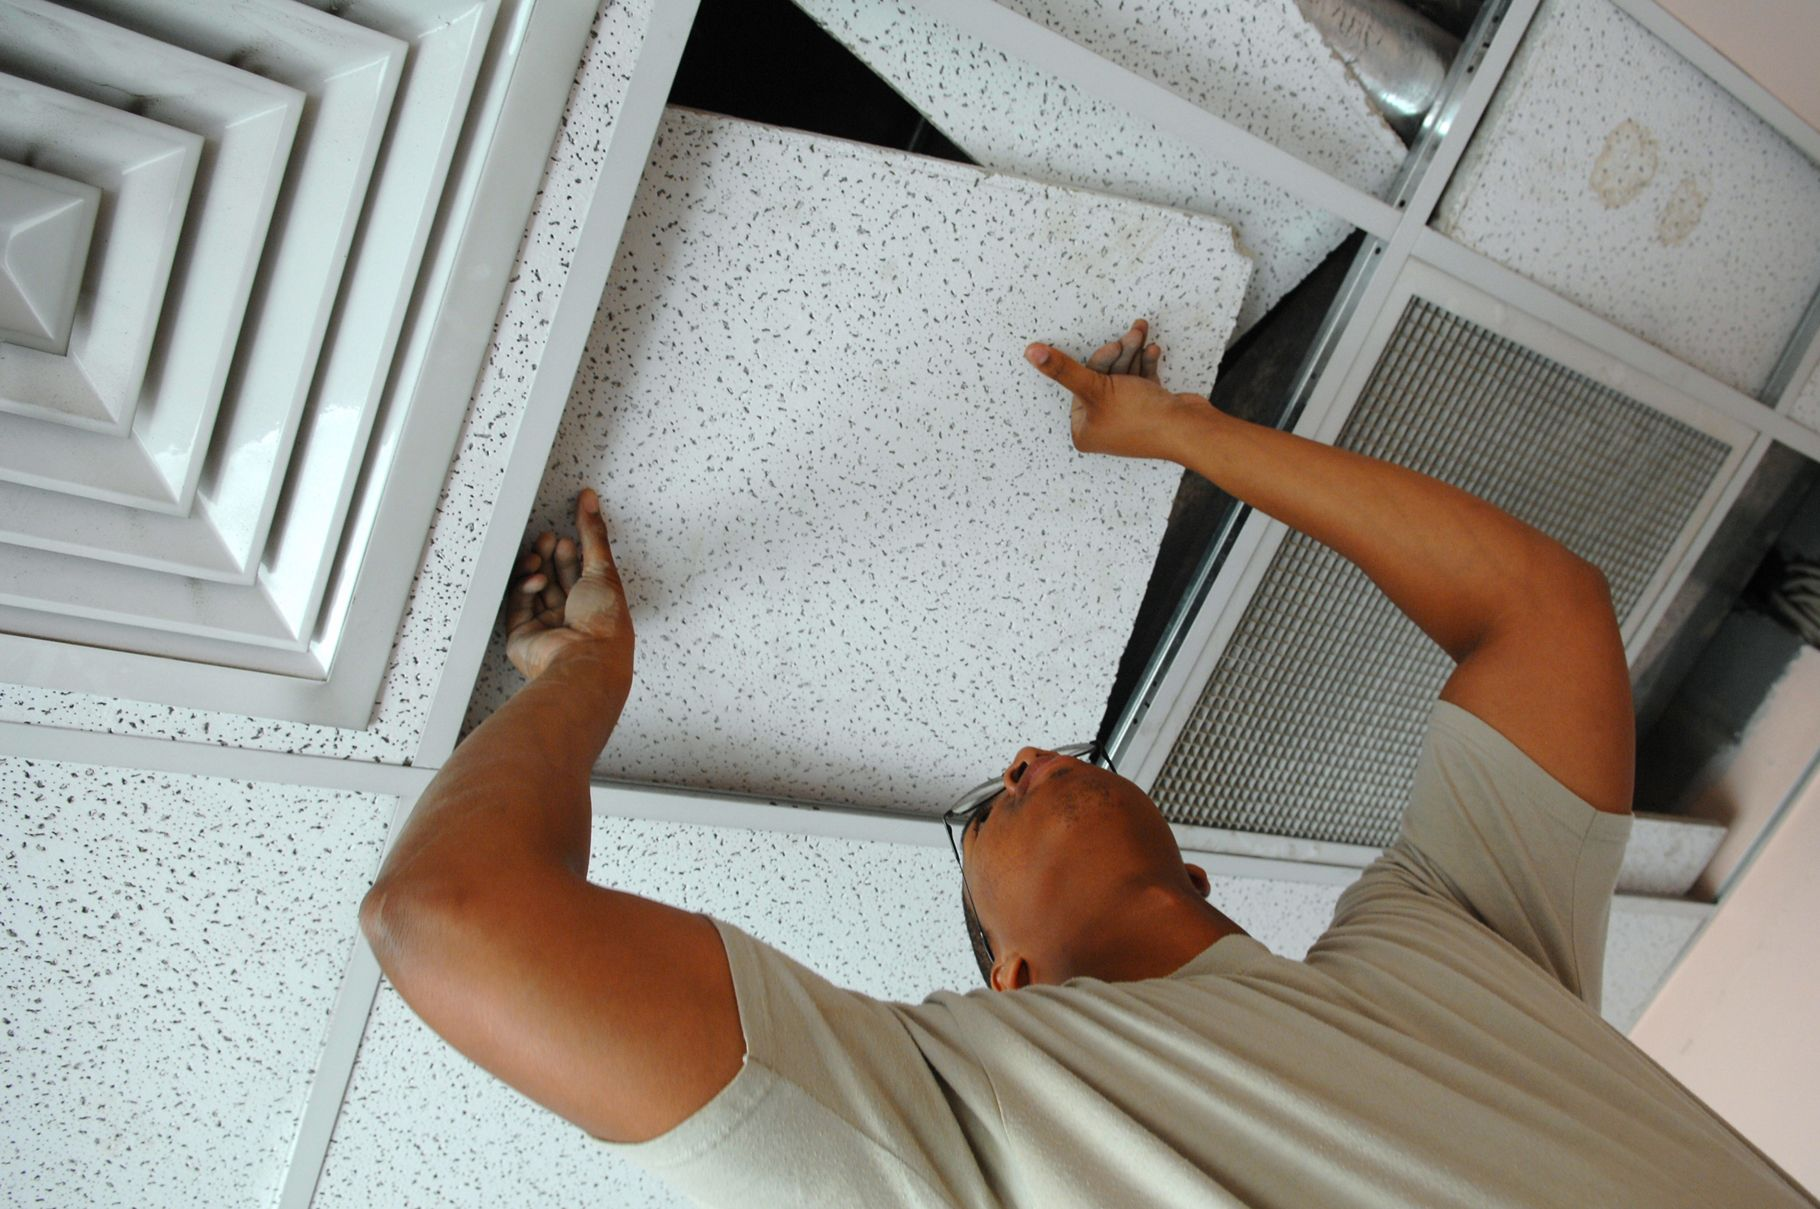 Ducted System Air Conditioning Ducted air conditioning